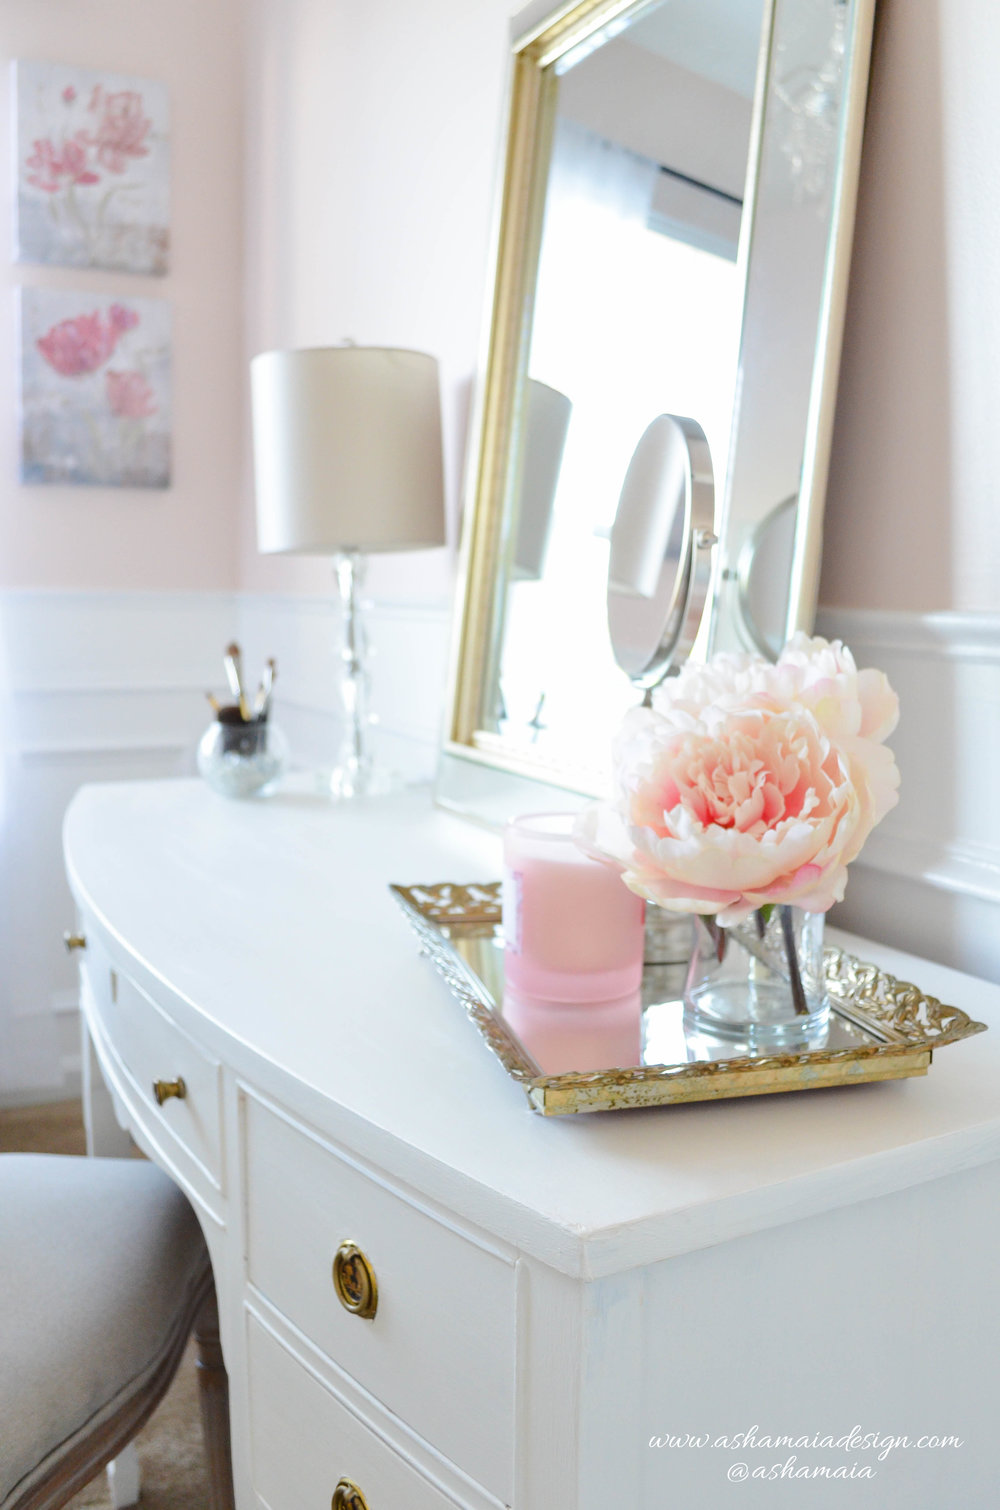 Intimate White Parisian Style Elegant Beauty Room with White Wainscoting, Picture Frame Wall Gallery, White Traditional Makeup Vanity with King Louis Chair and Peonies in Vase